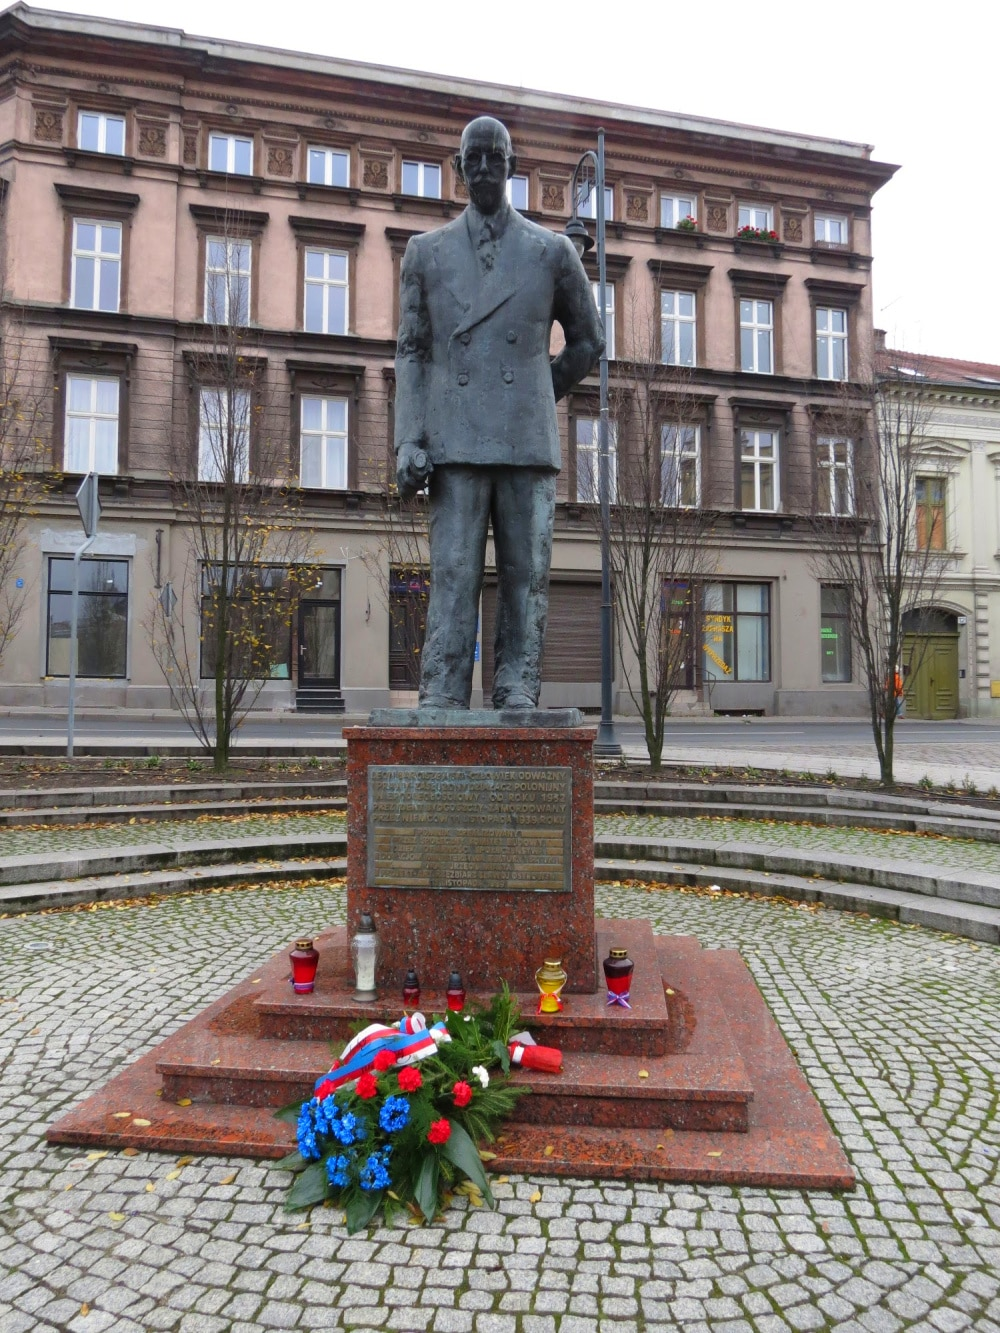 The Leon Barciszewski Statue commemorates the mayor of #Bydgoszcz during WWII who was murdered by the Nazis. He was a city hero. #statue